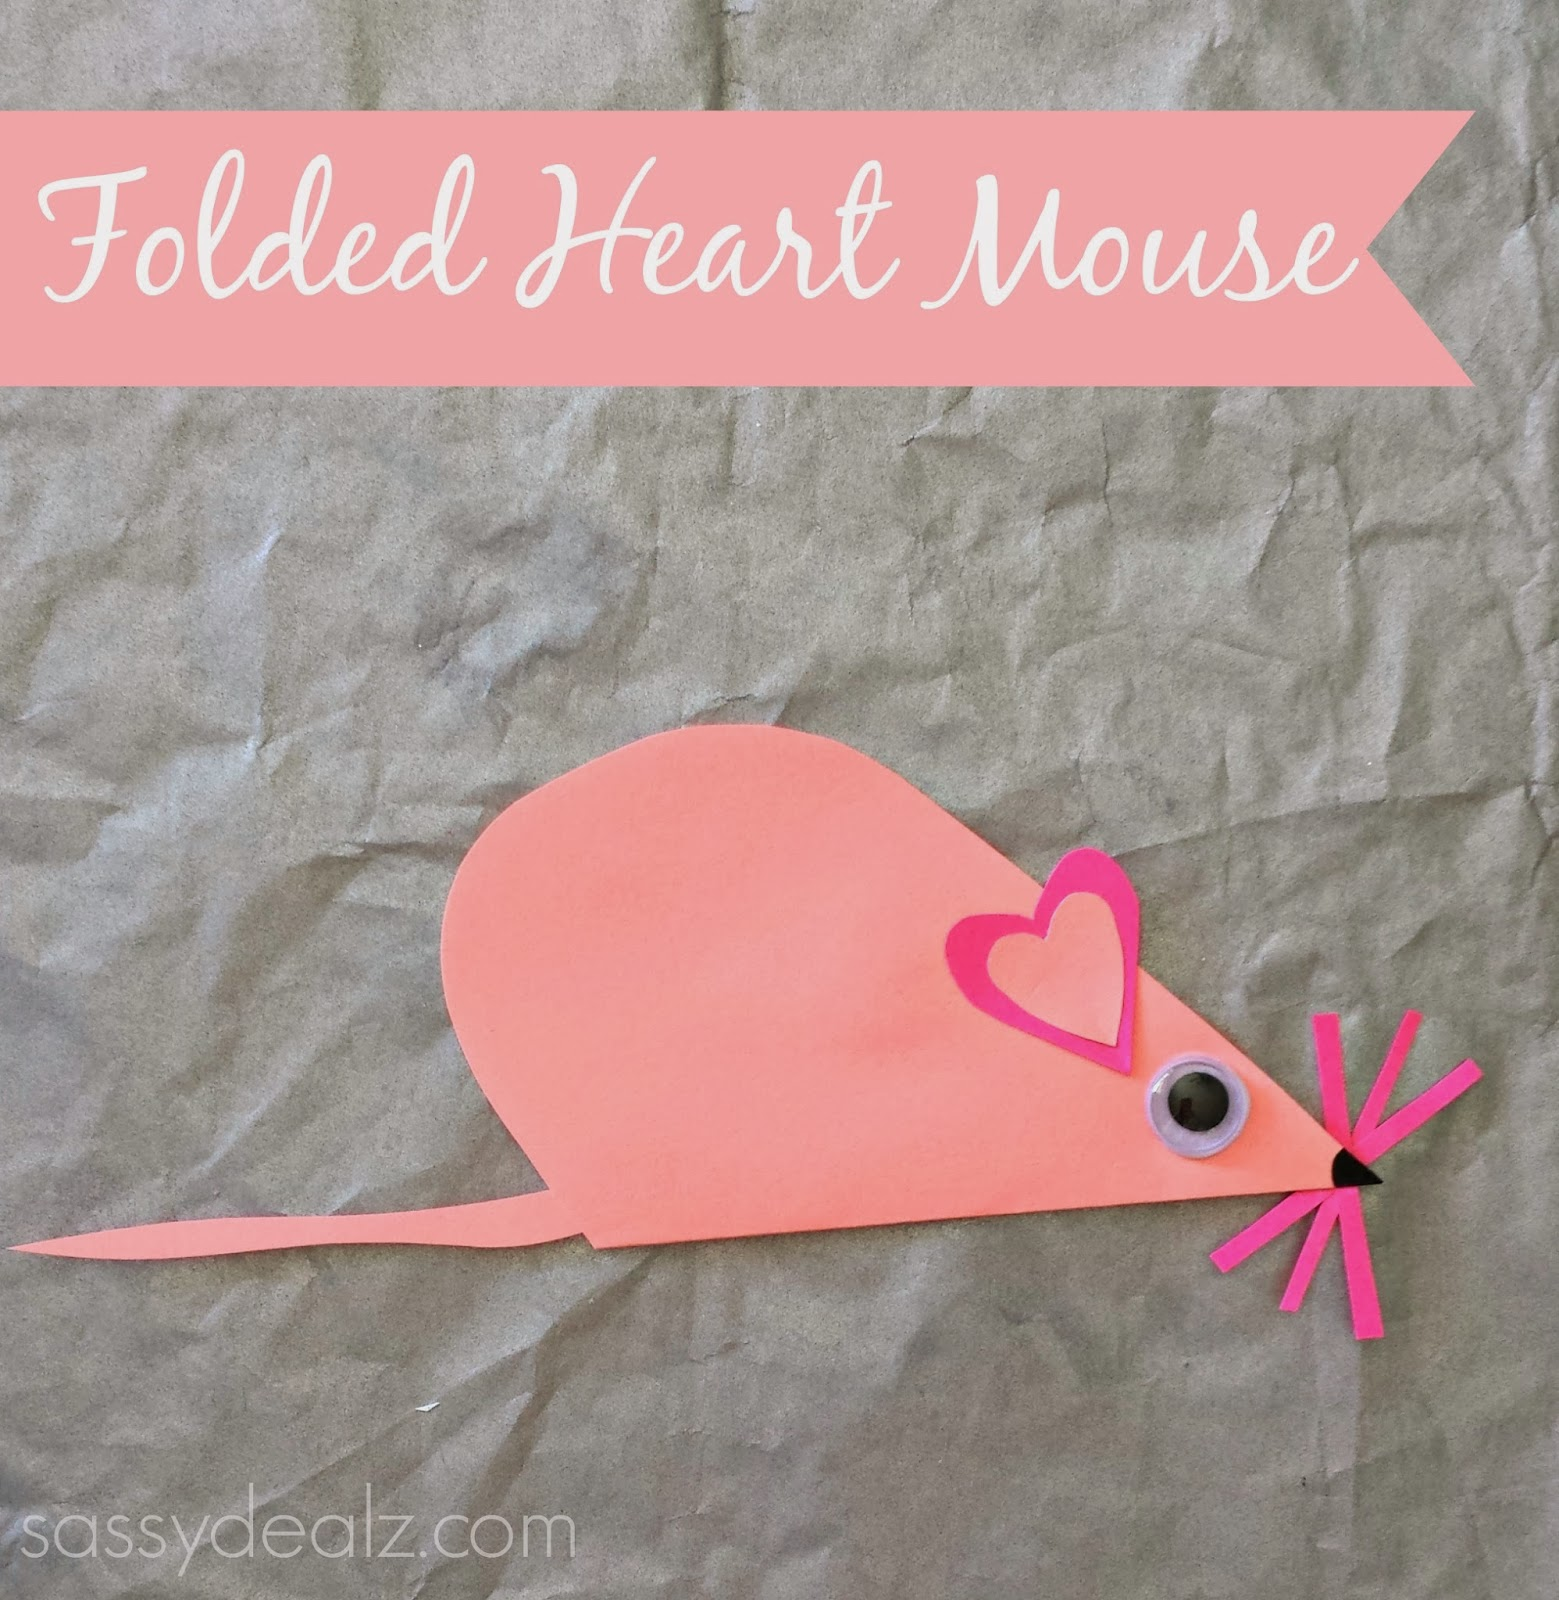 kids-craft-from-heart-shaped-paper14.jpg